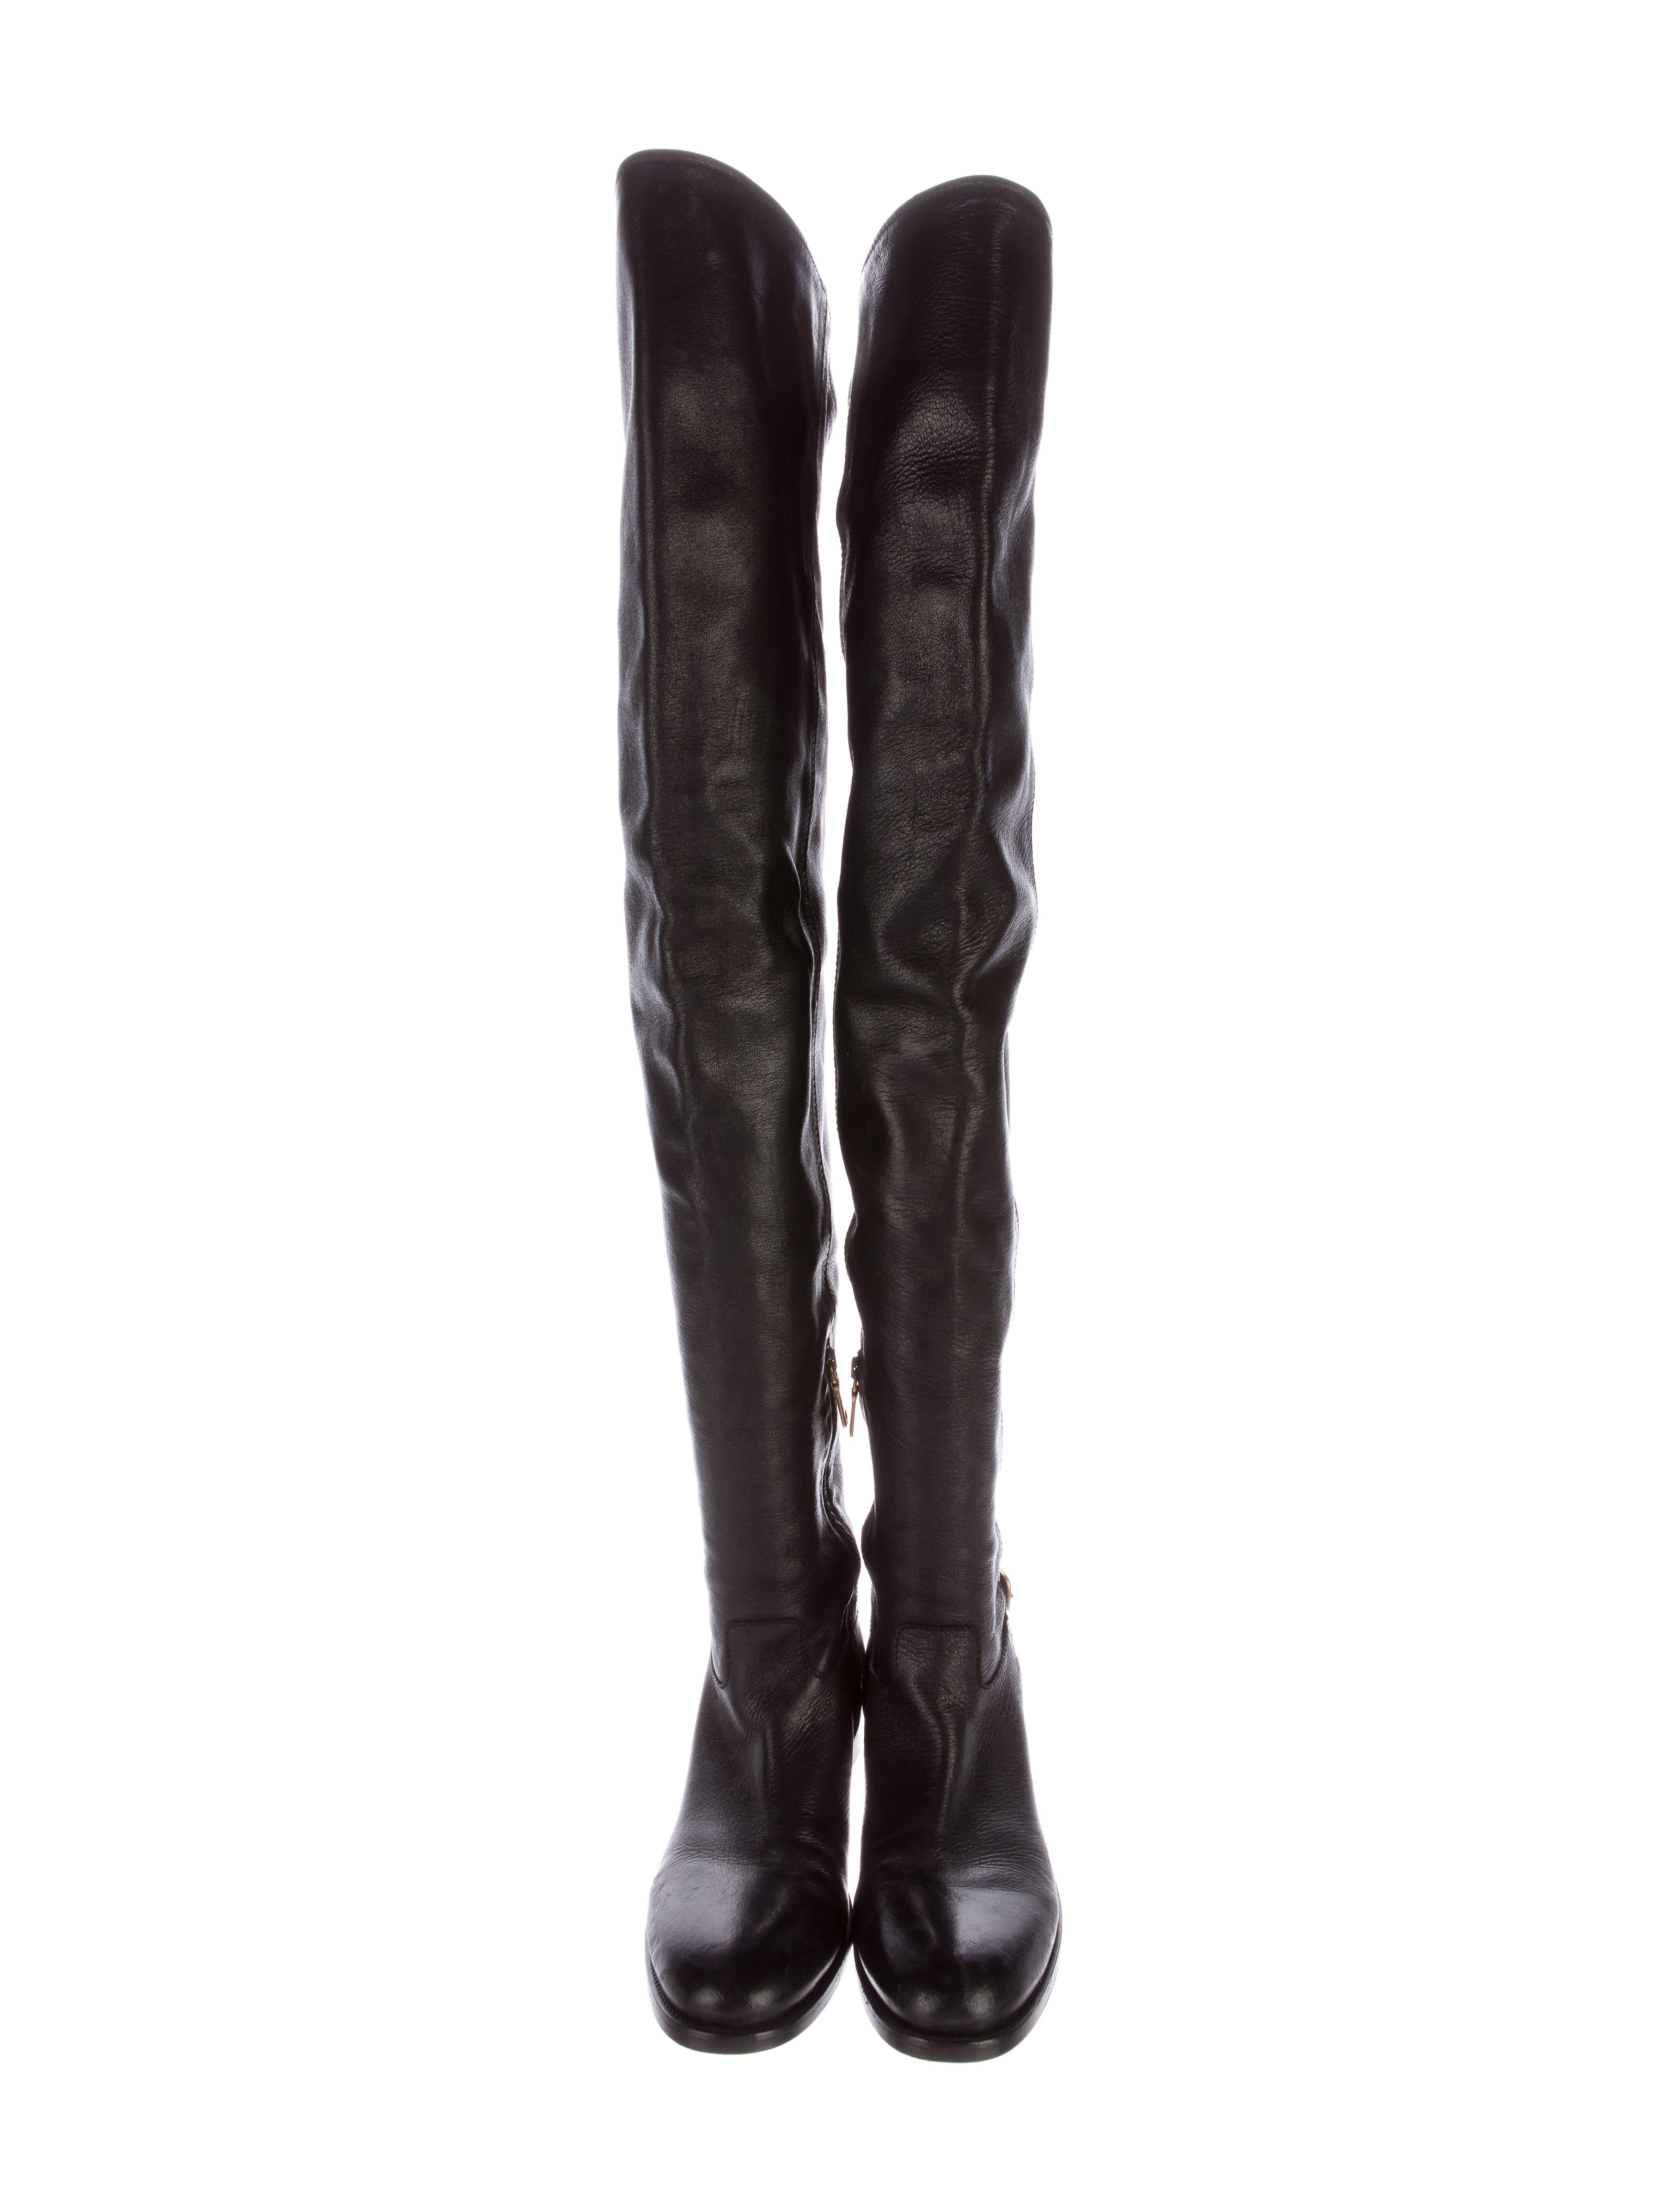 prada leather thigh high boots shoes pra133353 the